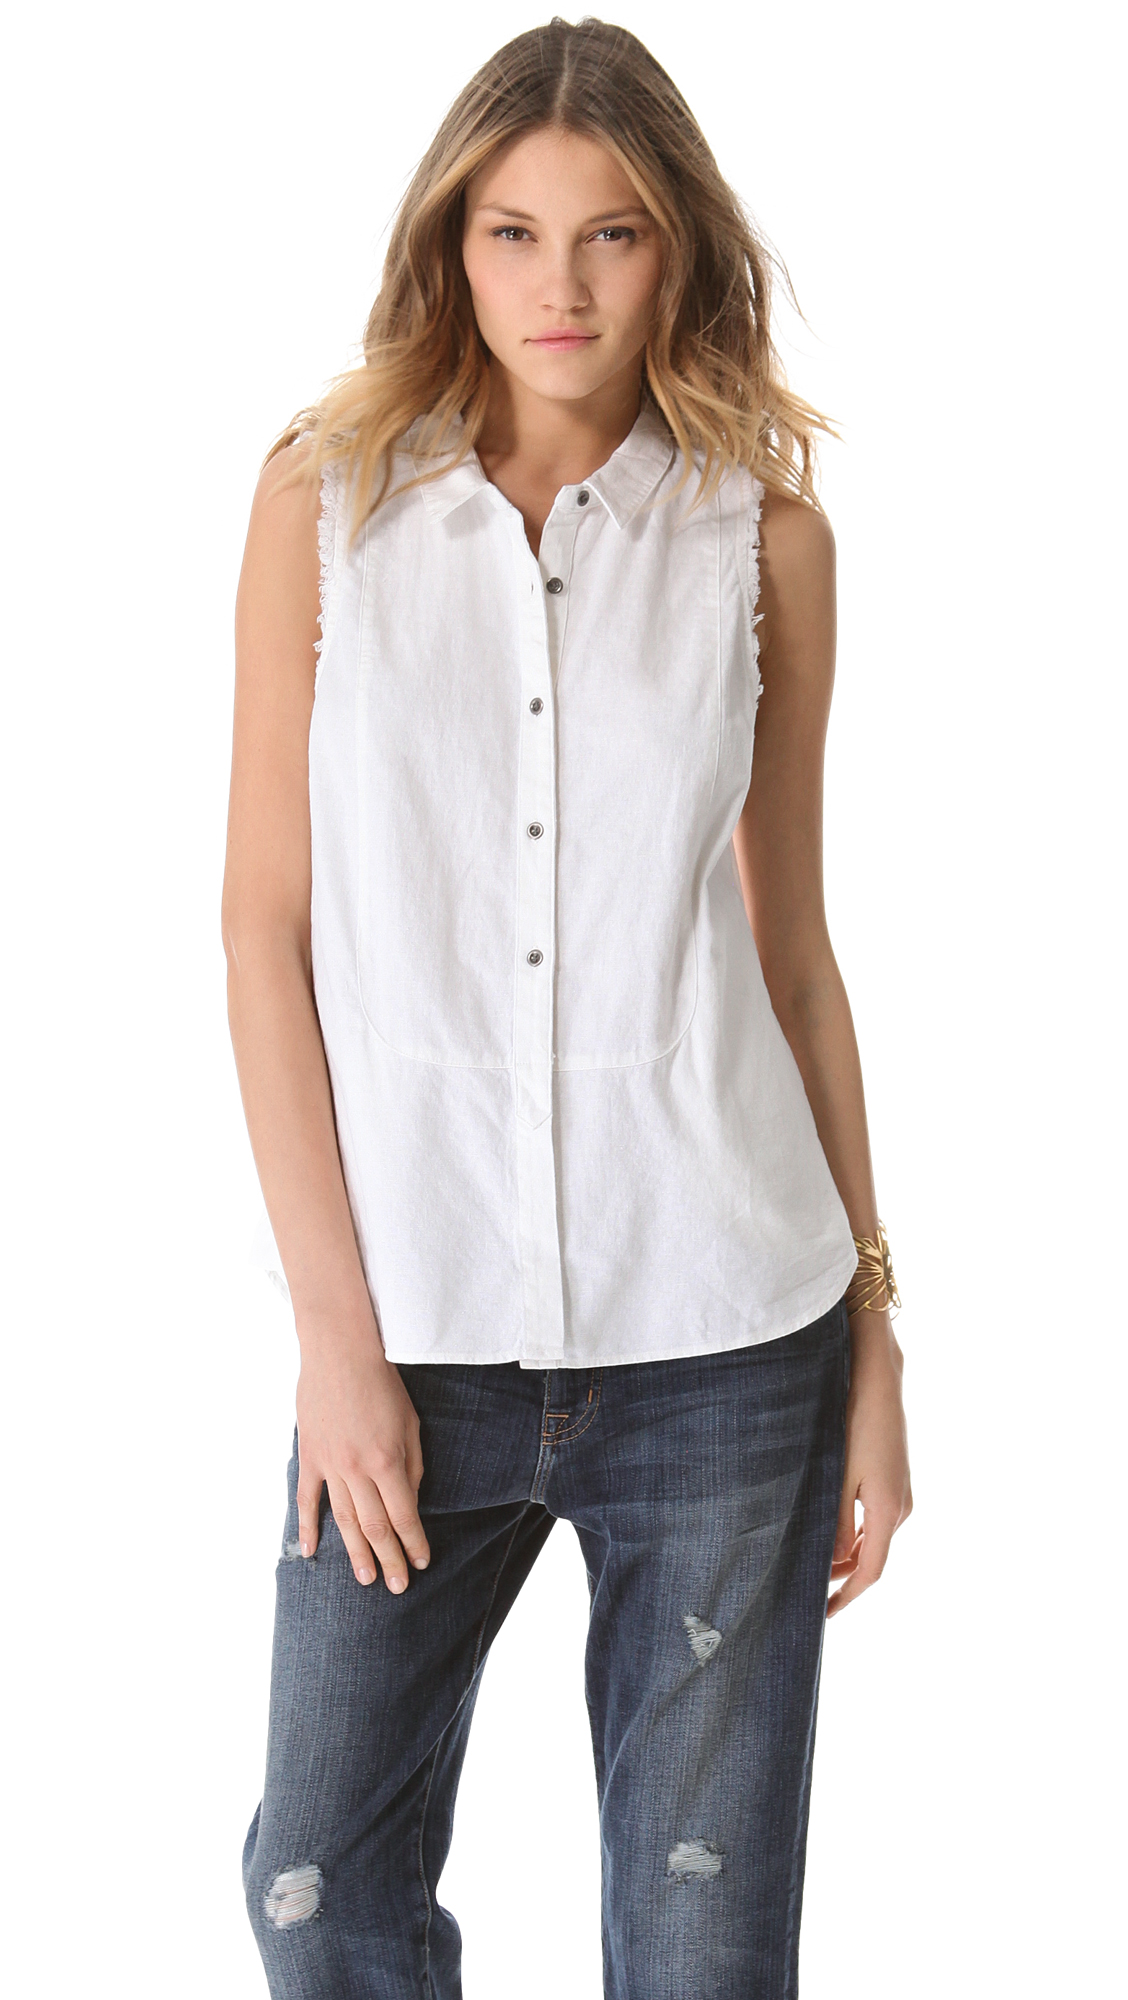 Free People Linen Sleeveless Shirt In White Lyst